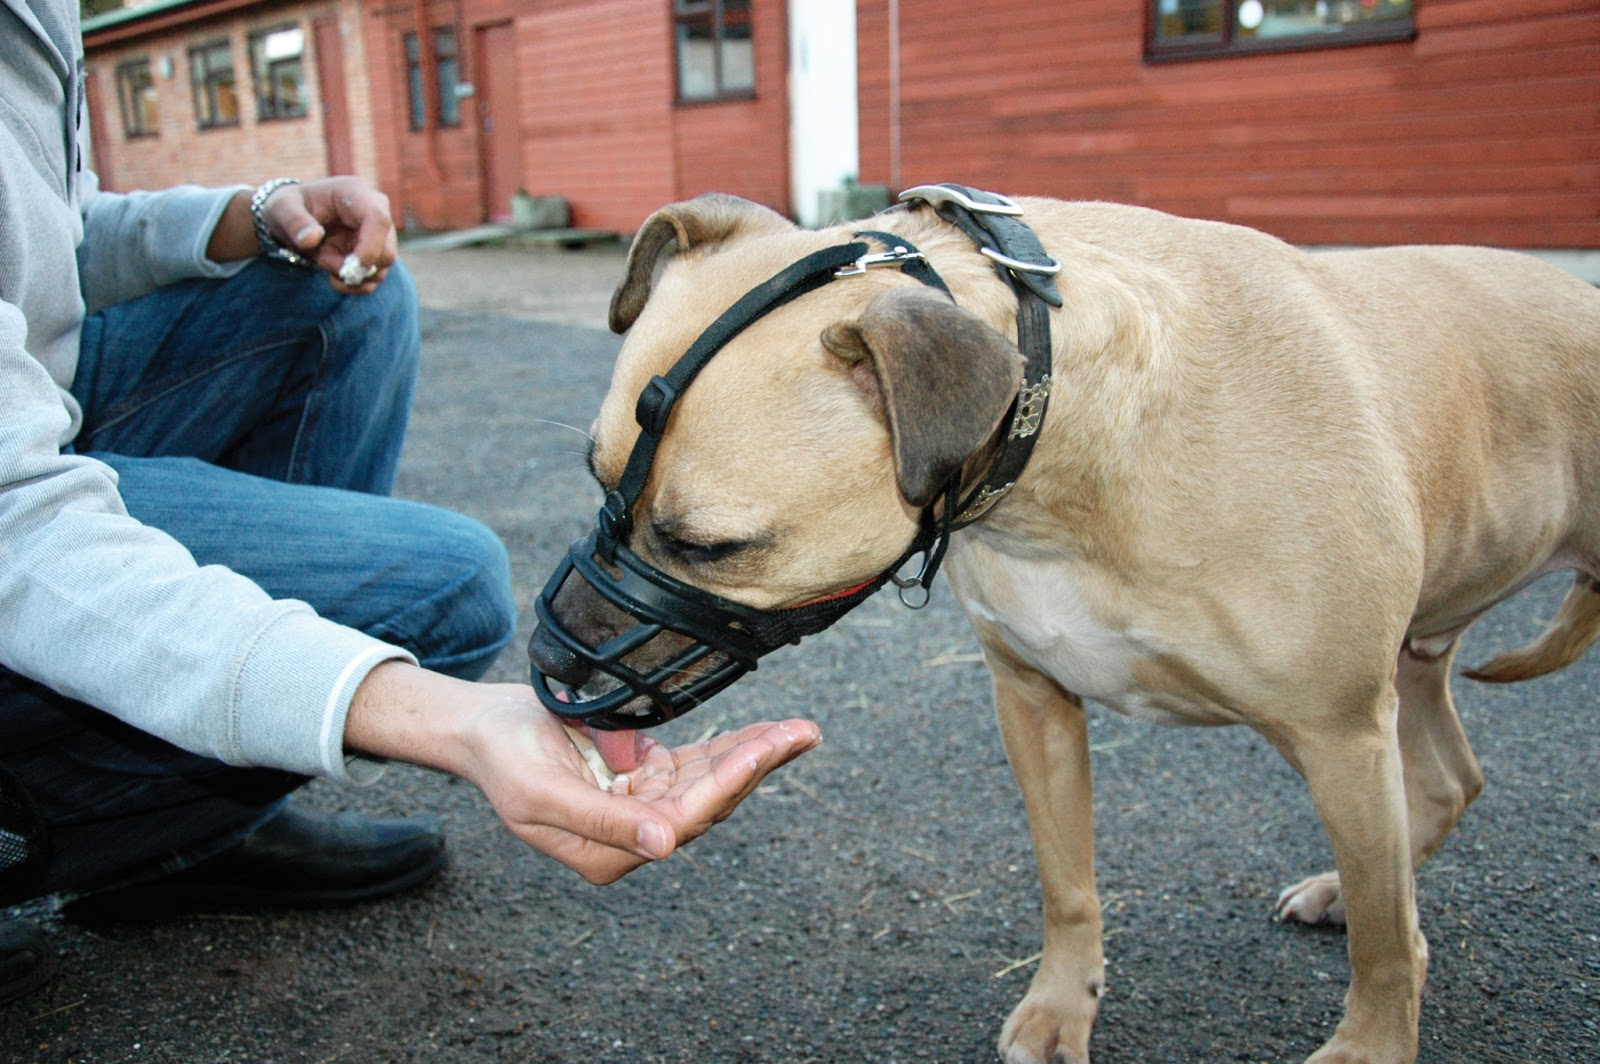 How To Get Rid Of Fleas On Dogs The Safe And Natural Way